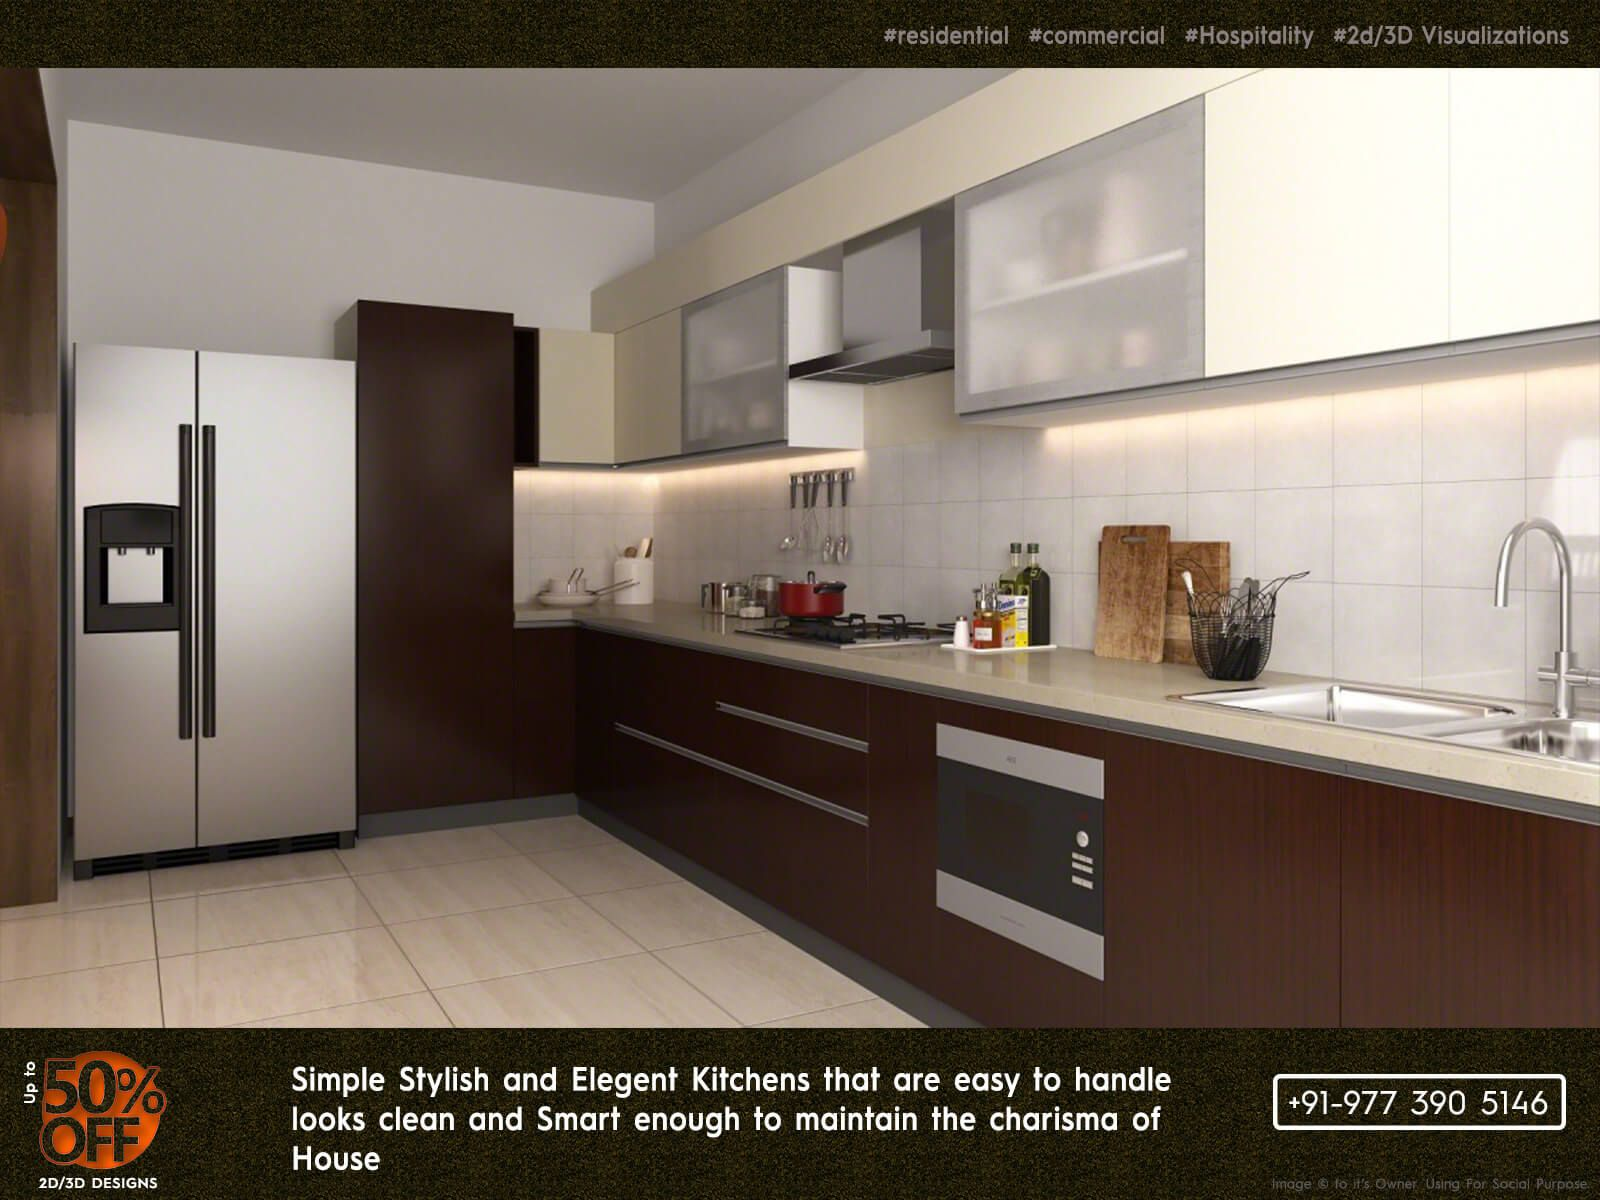 Smart Kitchens Conceptualized With 2d 3d Designs For Complex Interiors Available That Fits Kitchen Design Trends Kitchen Design Color Interior Design Kitchen